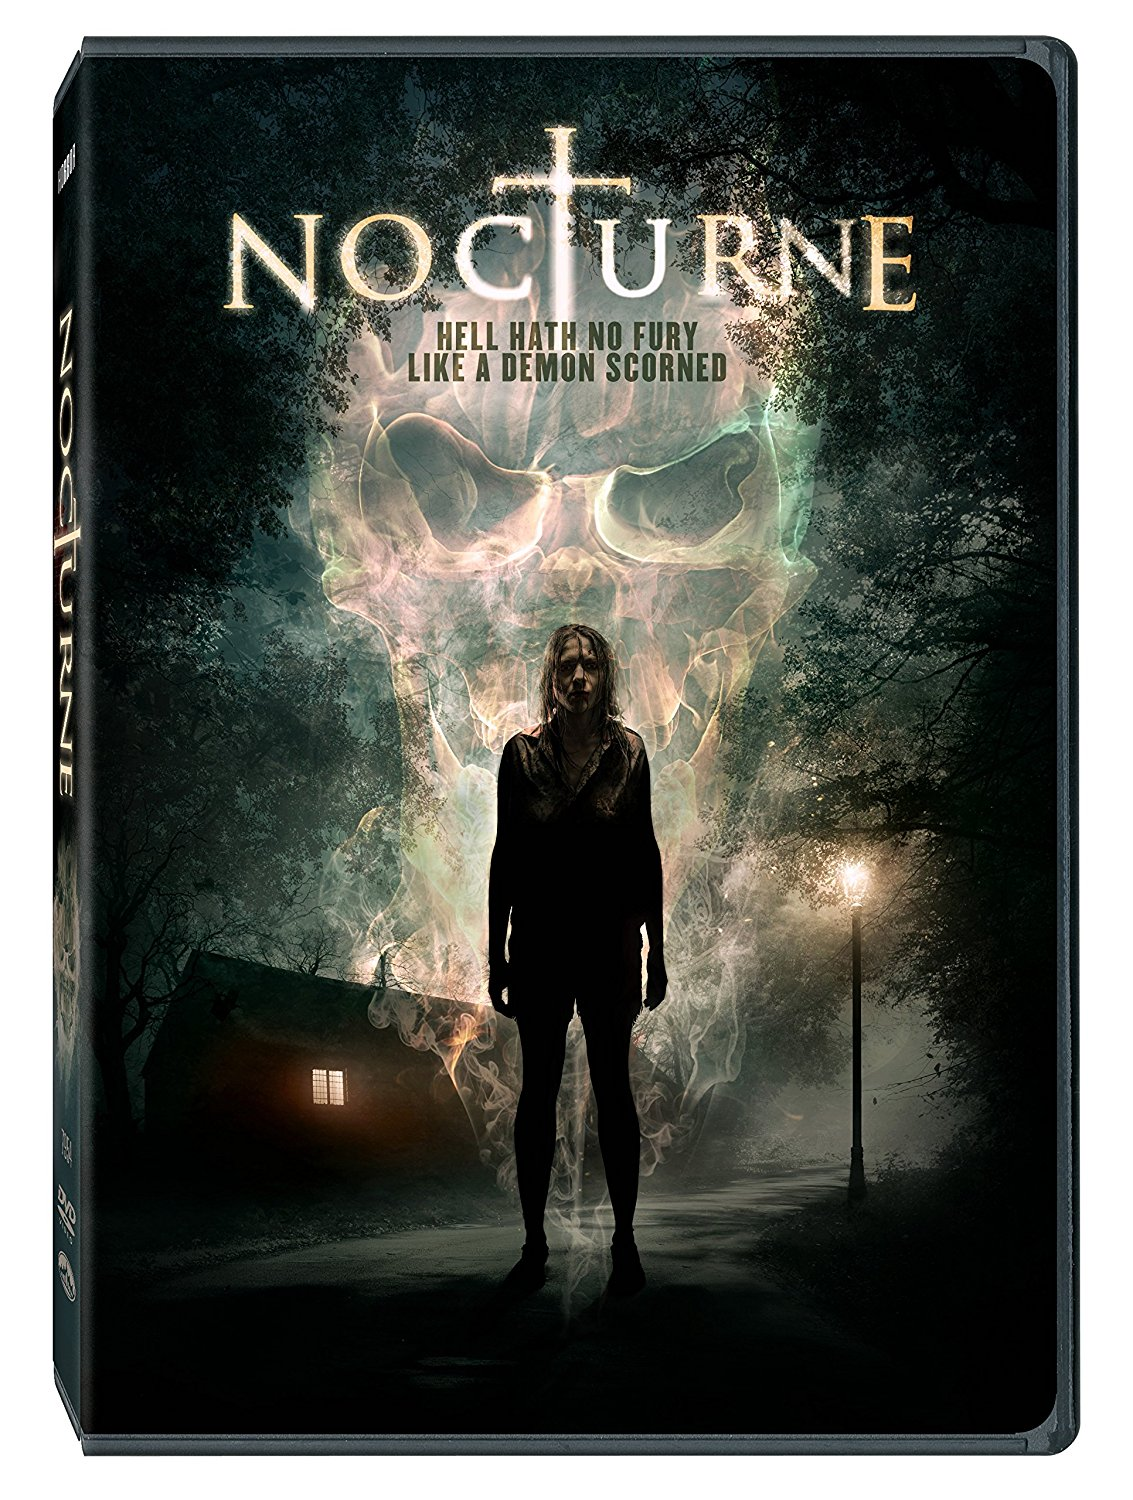 nocturnedvdcover - Indie Thriller Nocturne Gets Imminent Home Video Release Date